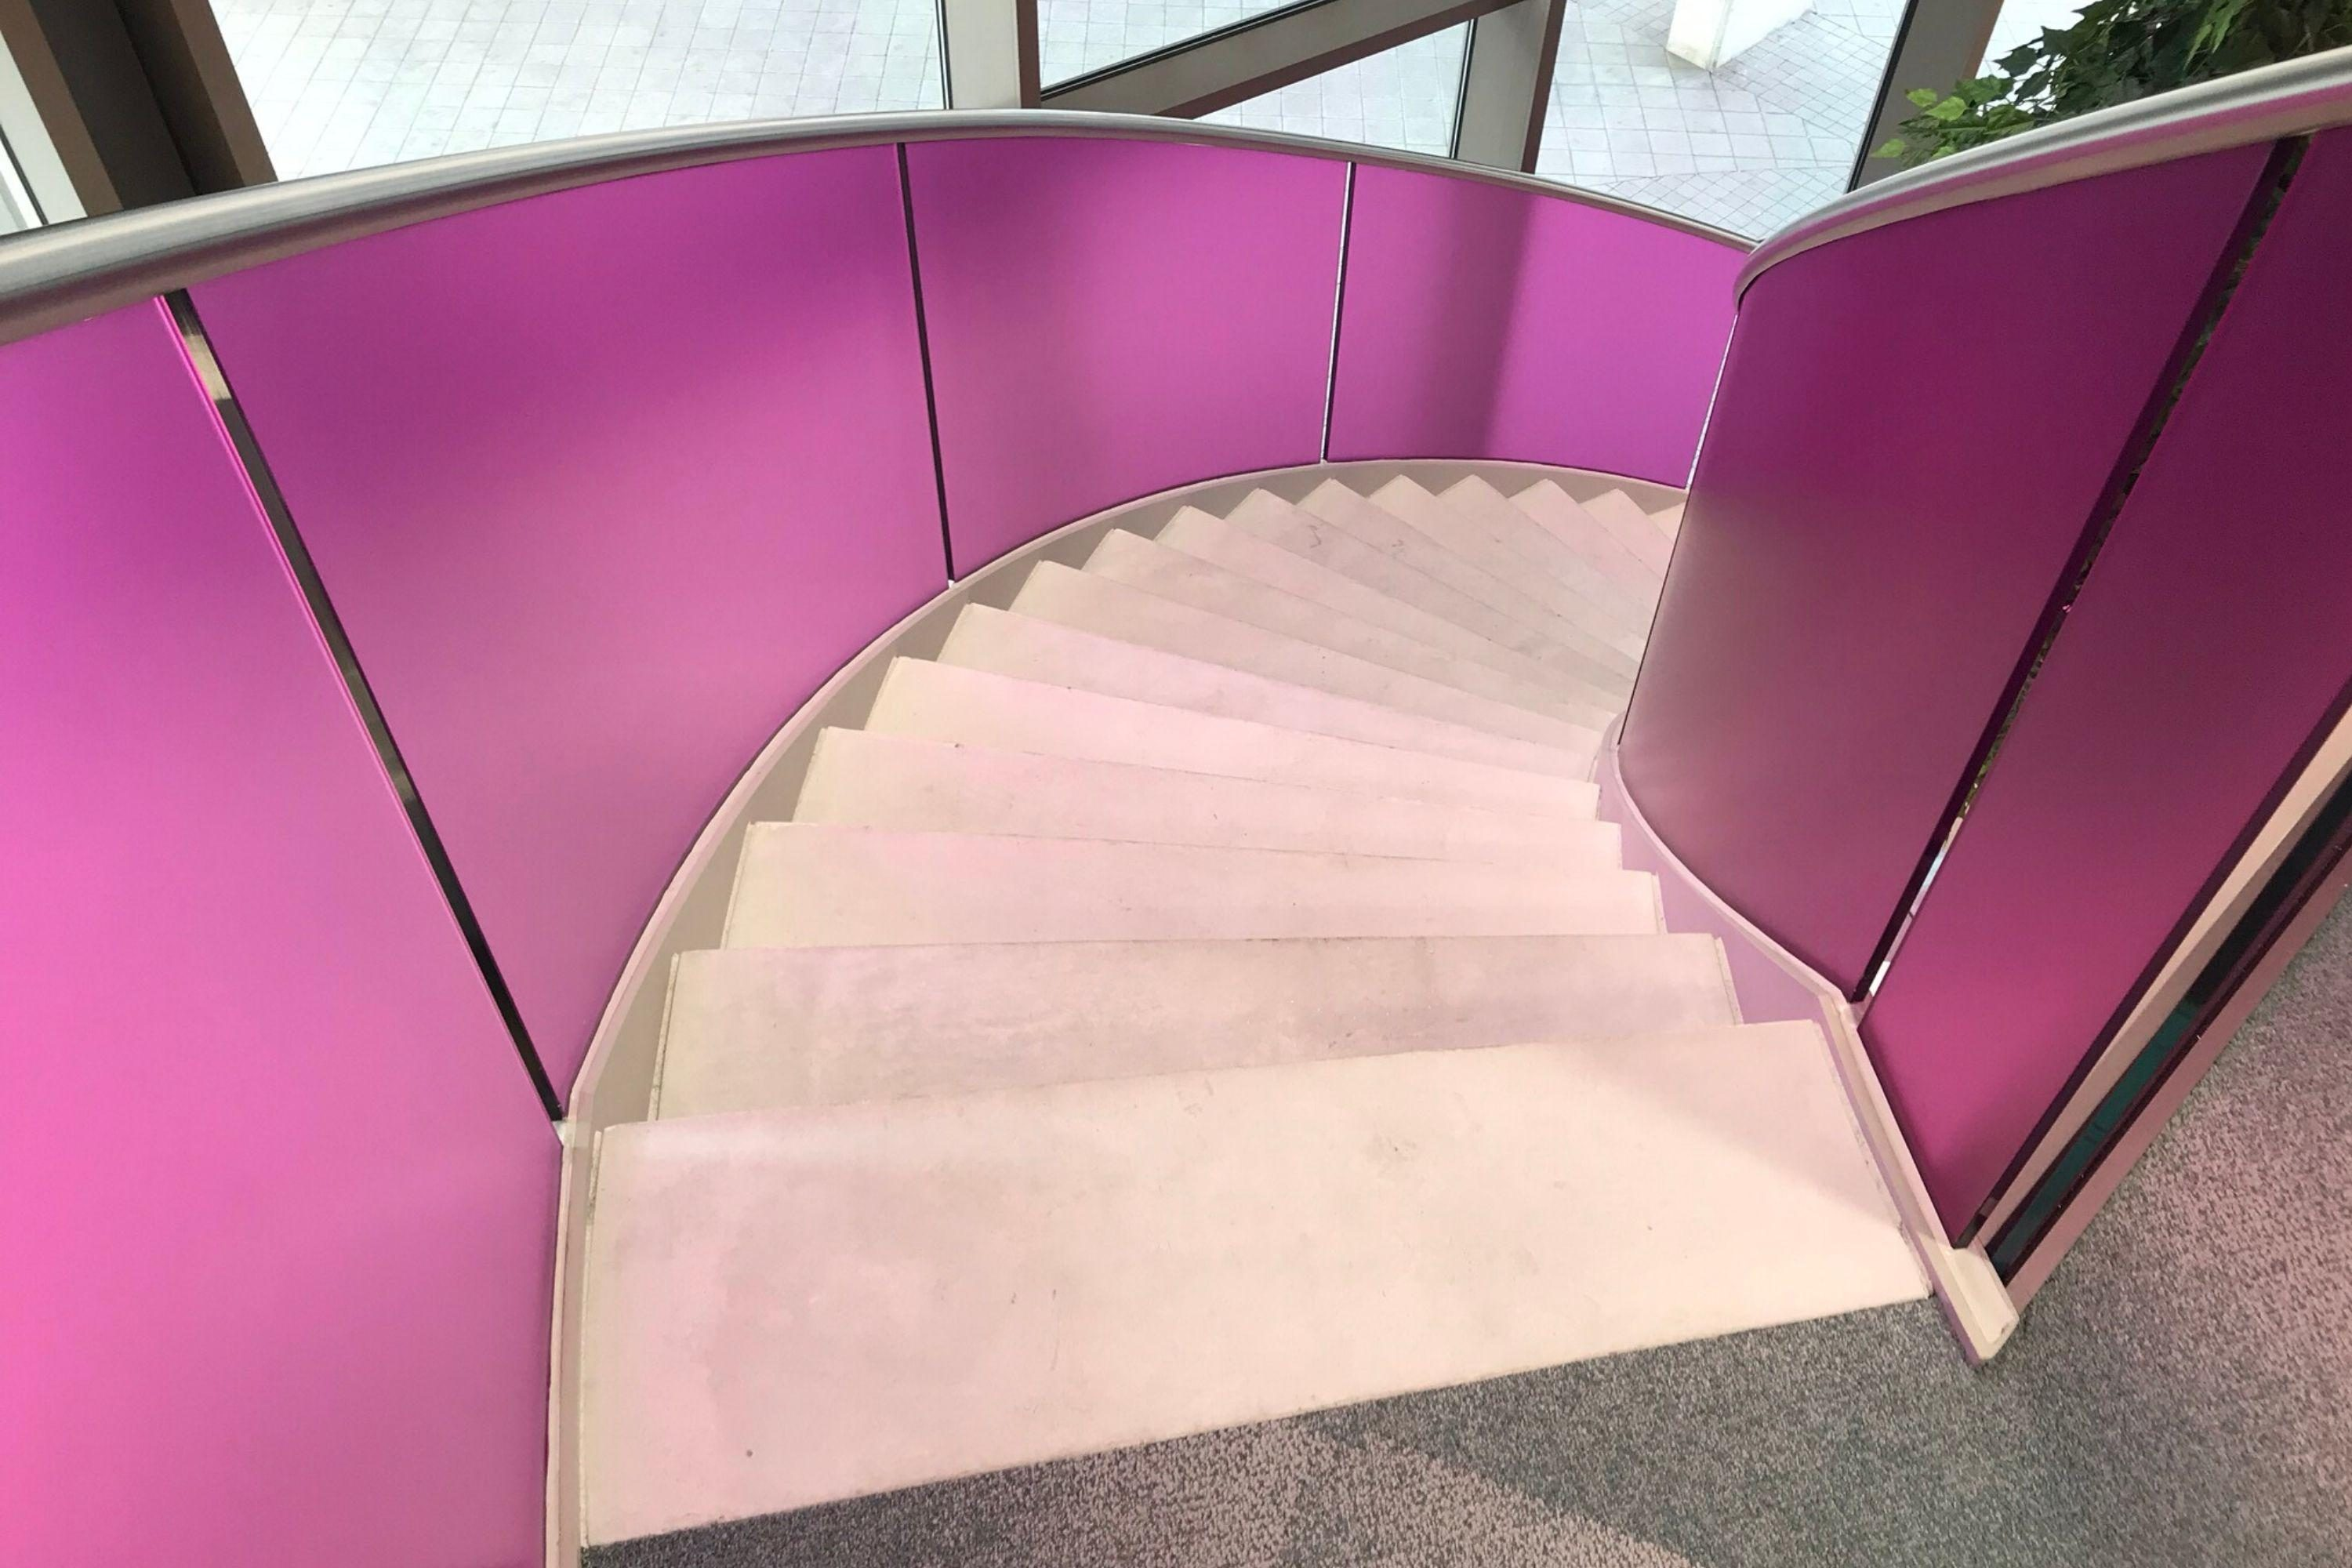 Concrete stairs with pink balustrade